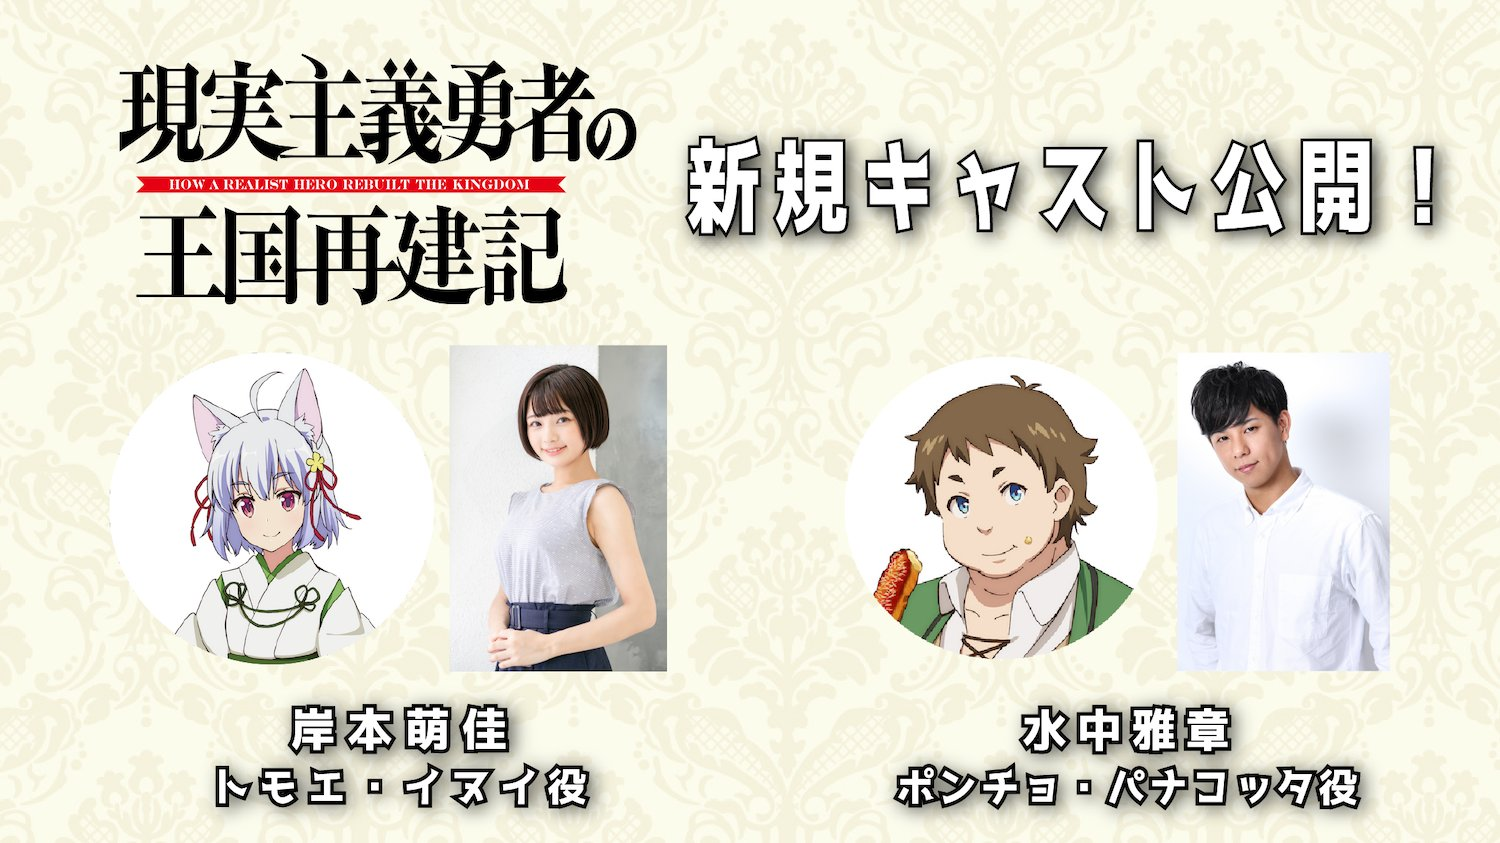 A promotional image for the upcoming How a Realist Hero Rebuilt the Kingdom TV anime, featuring headshots of the characters Tomeo Inui and Poncho Panakkota and their respective voice actors, Moeka Kishimoto and Masaaki Mizunaka.